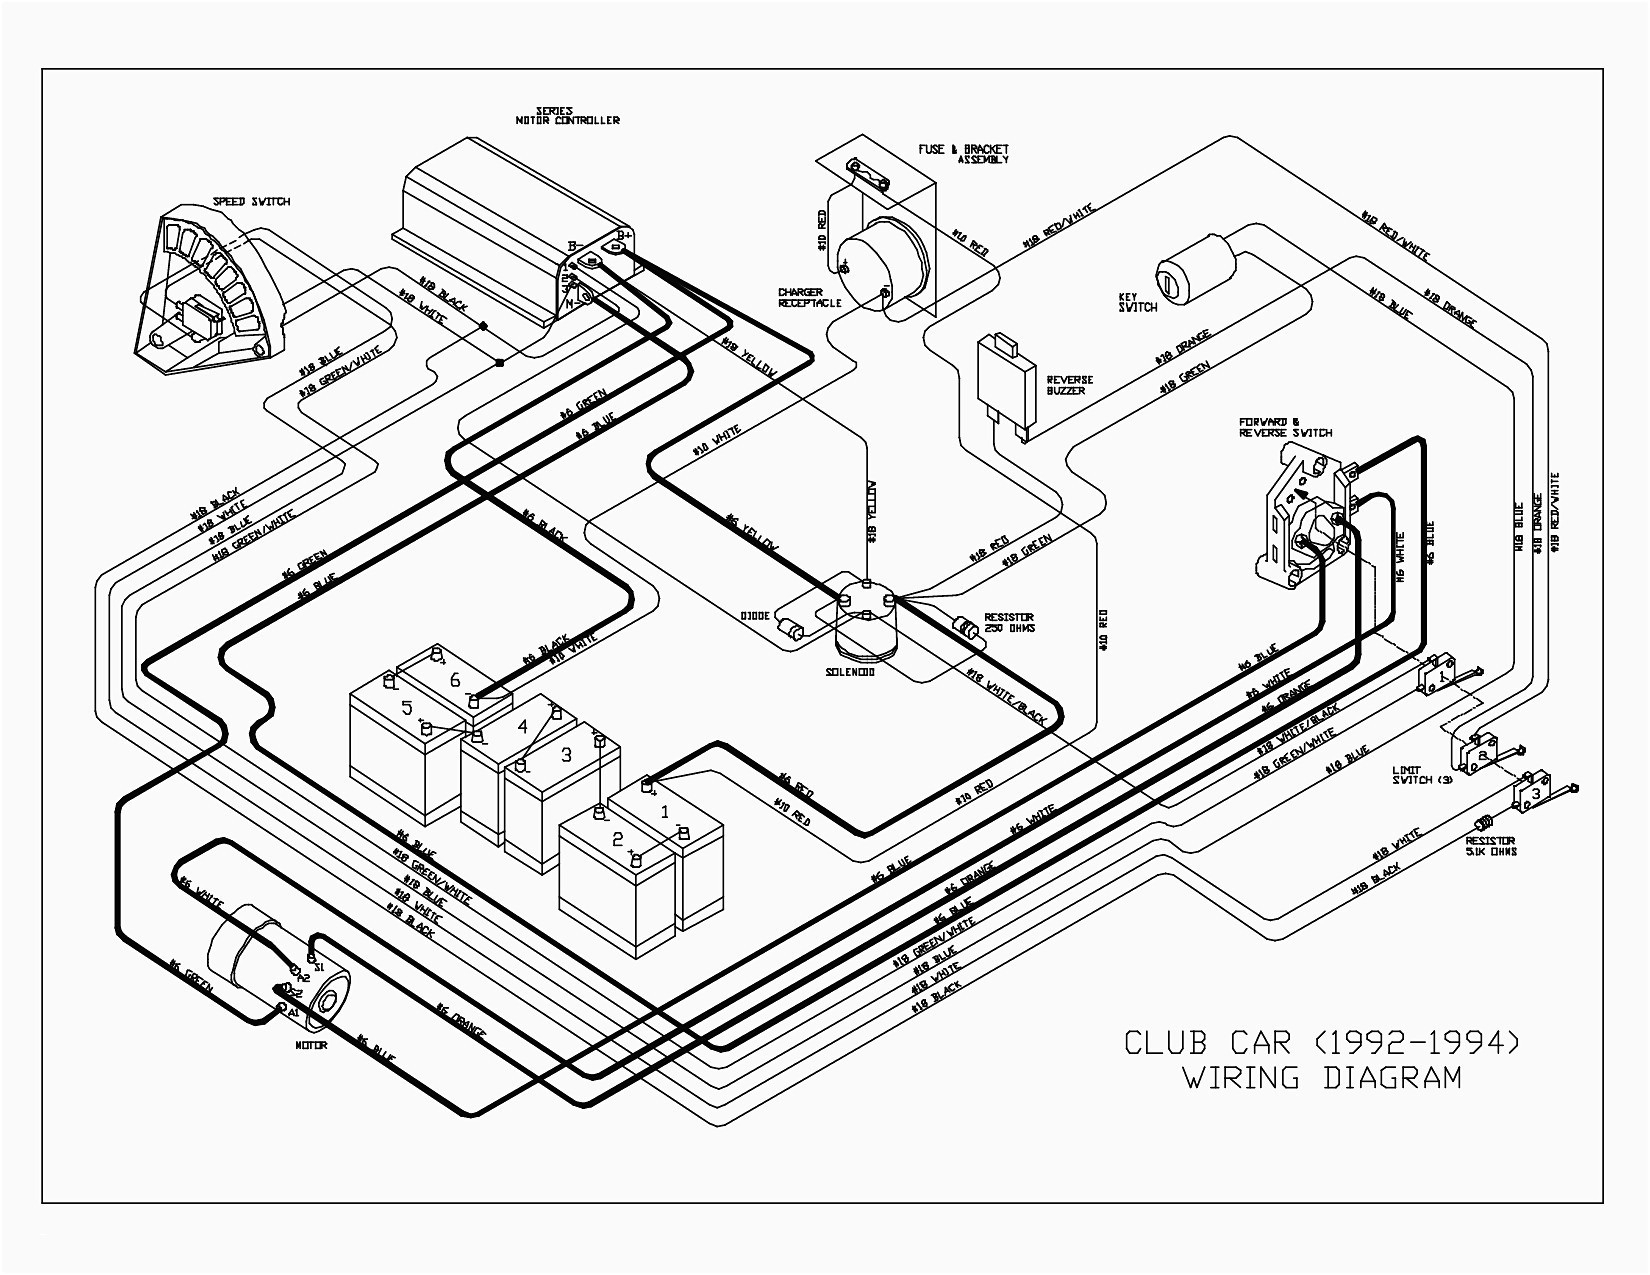 1991 Dodge Dakotum Wiring Diagram